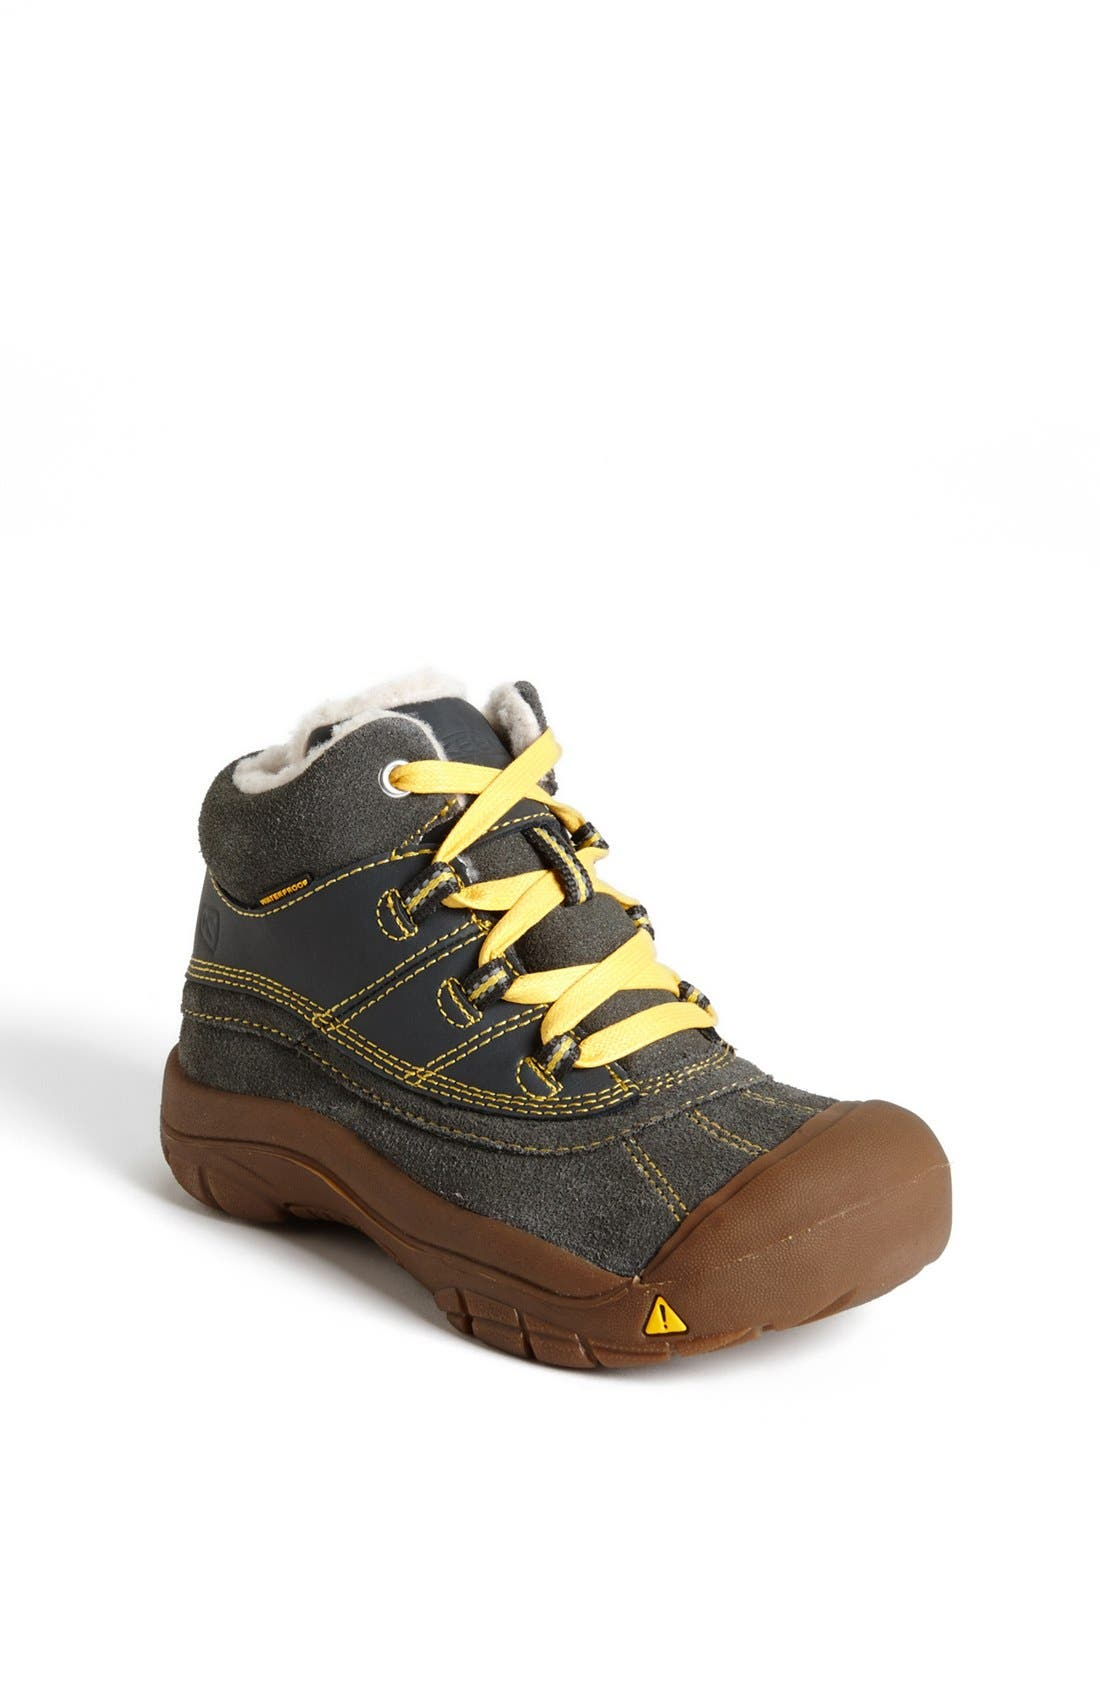 Alternate Image 1 Selected - Keen 'Brady' Waterproof Boot (Toddler, Little Kid & Big Kid)